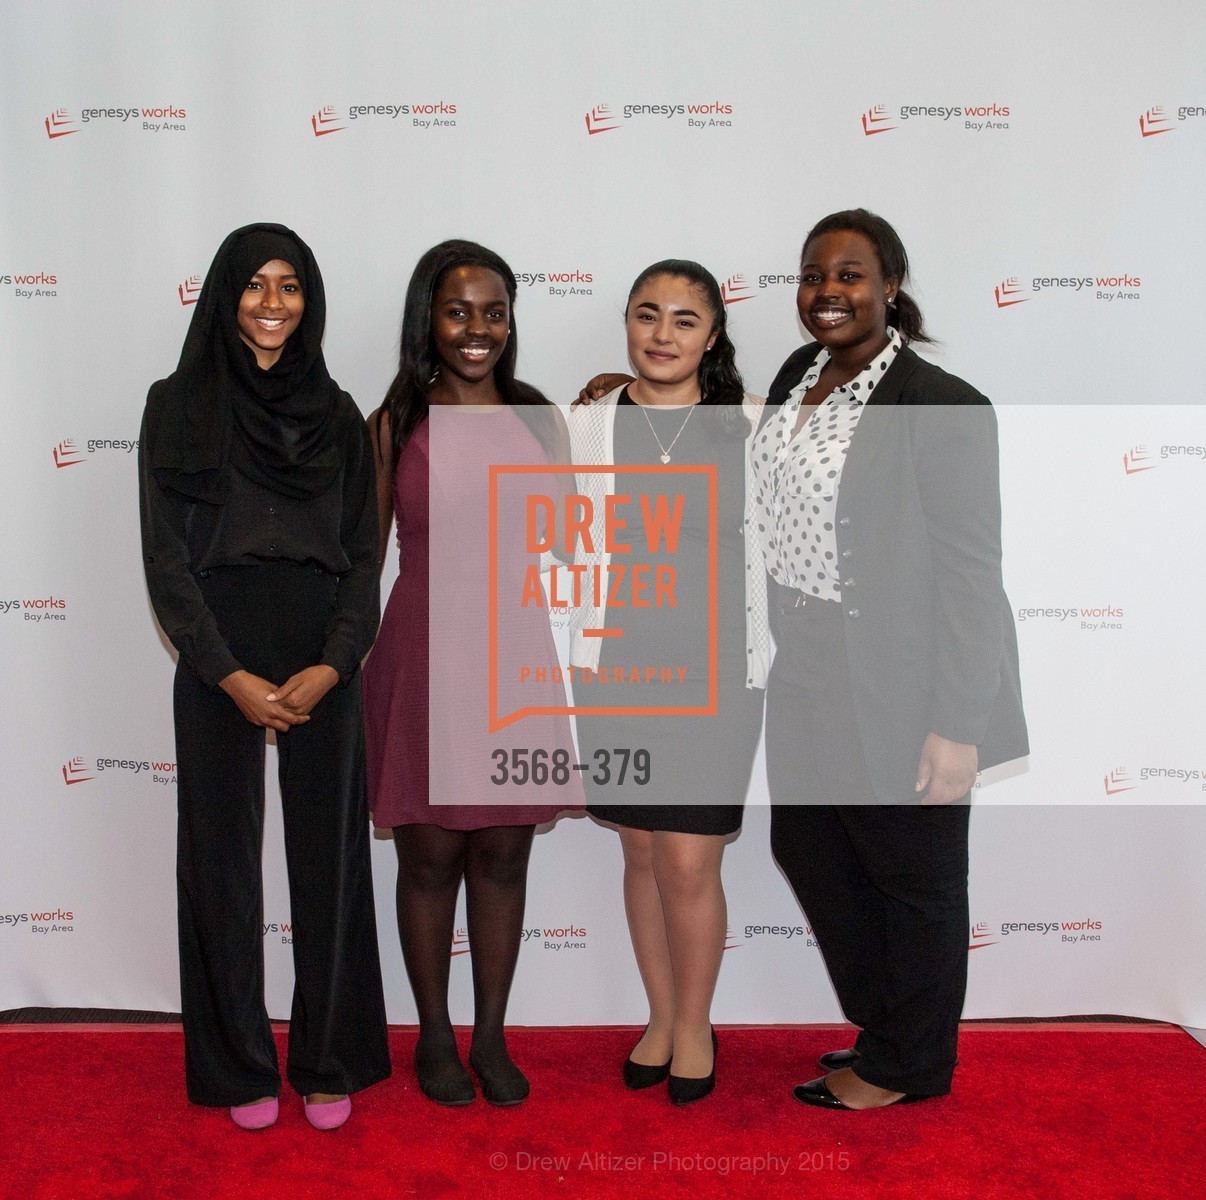 Fatimah Dalil, Tyanna Davis, Courtney Butler, Genesys Works Bay Area Presents BREAKING THROUGH, St. Regis Hotel. 125 3rd St, October 14th, 2015,Drew Altizer, Drew Altizer Photography, full-service agency, private events, San Francisco photographer, photographer california